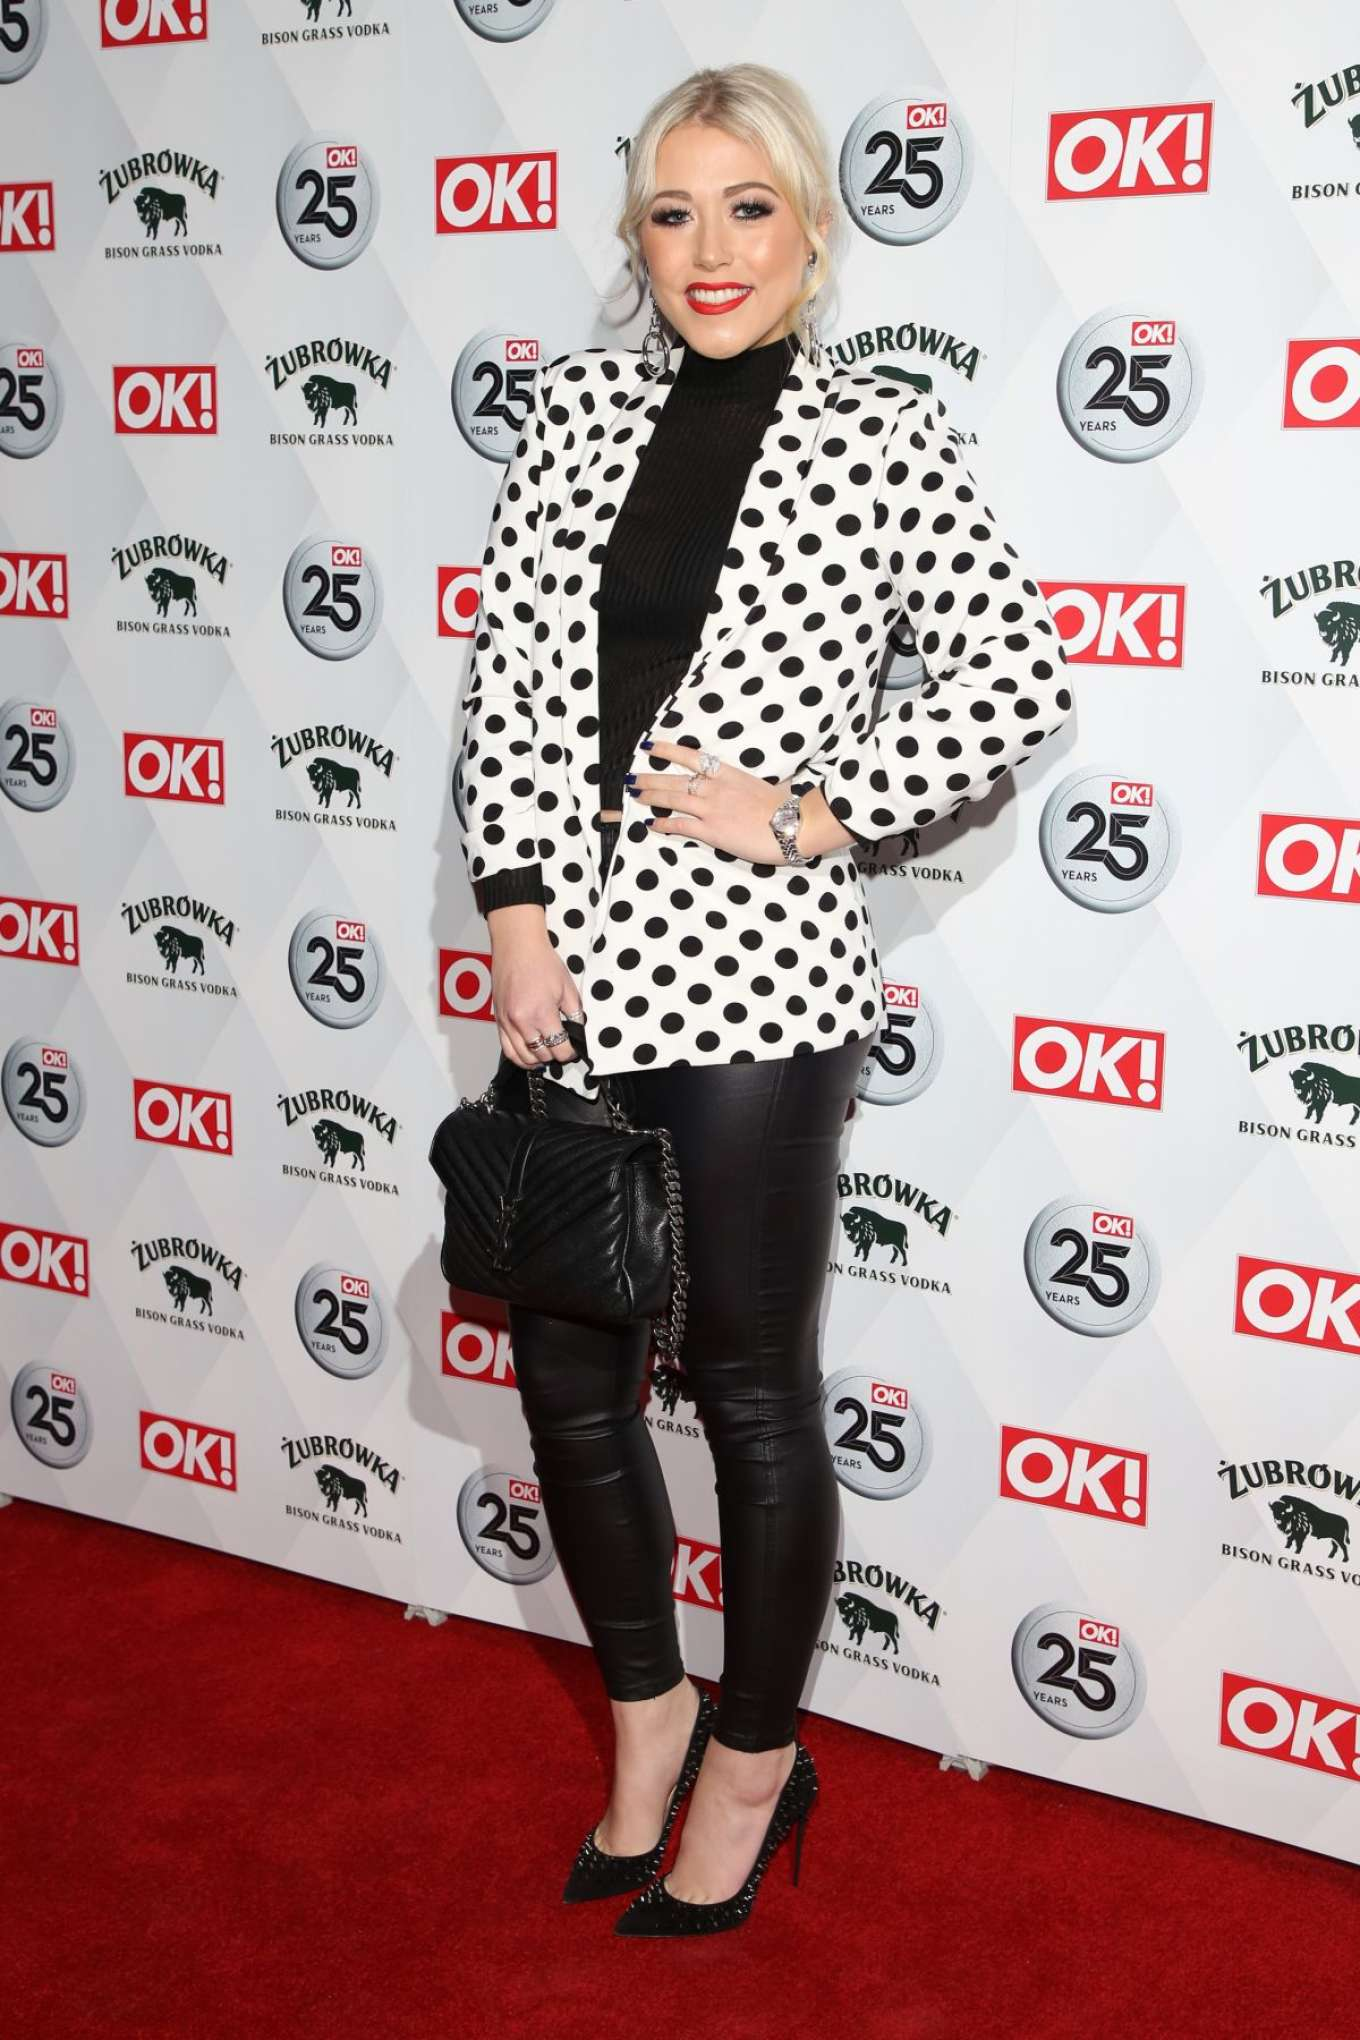 Amelia Lily -  OK! Magazine's 25th Anniversary Party in London